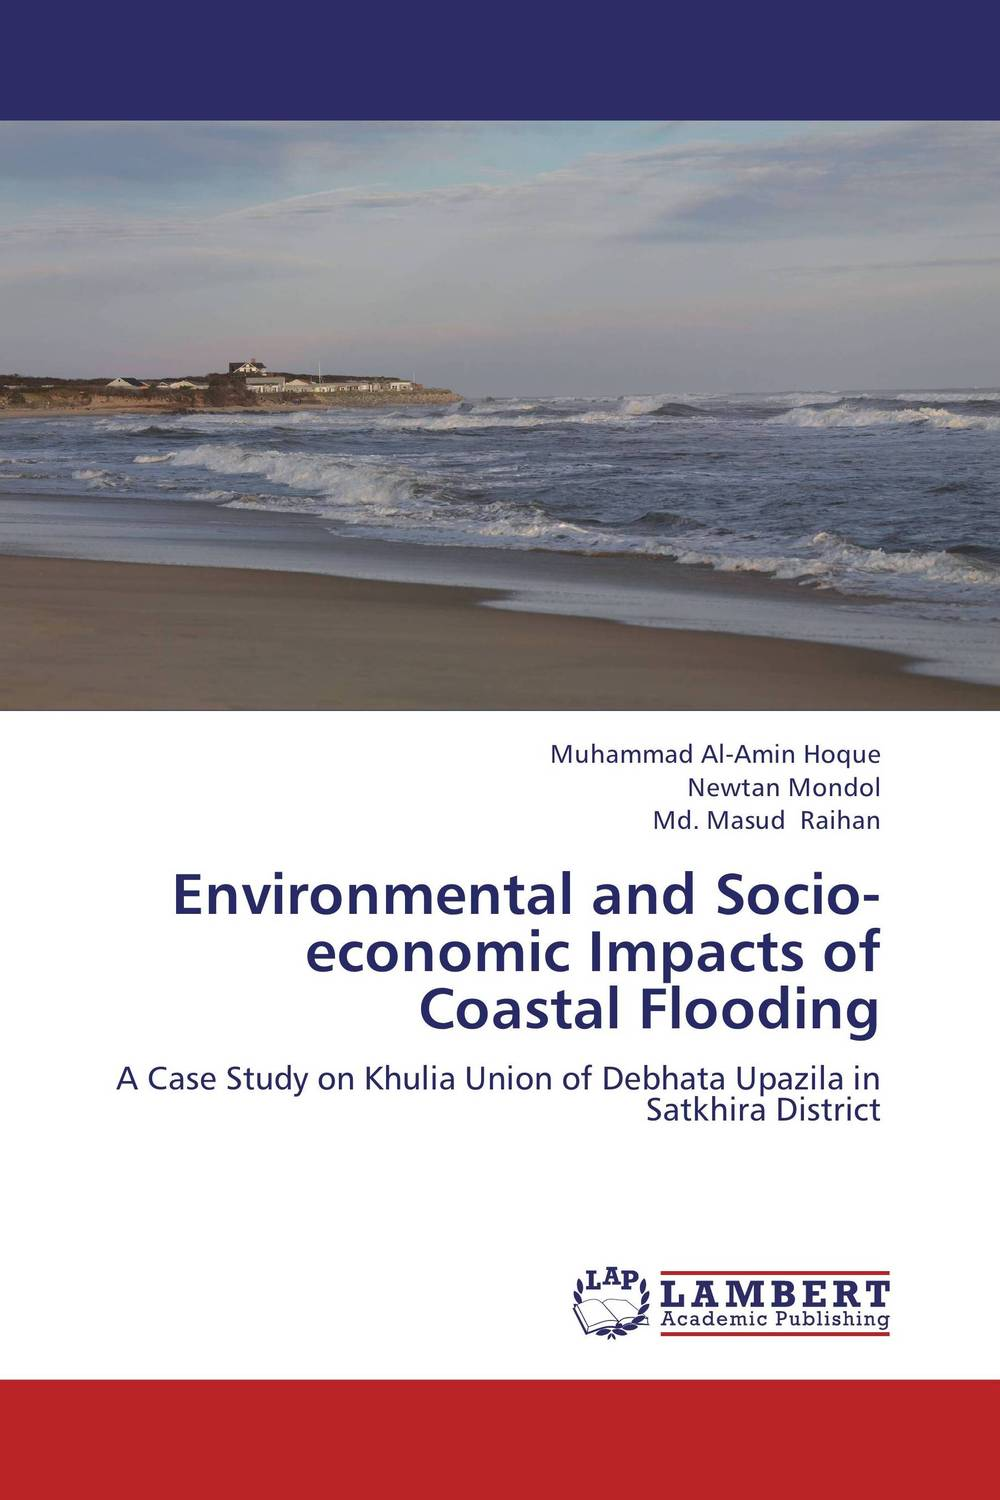 Environmental and Socio-economic Impacts of Coastal Flooding рубашка мужская dan jieshi dj192 2015